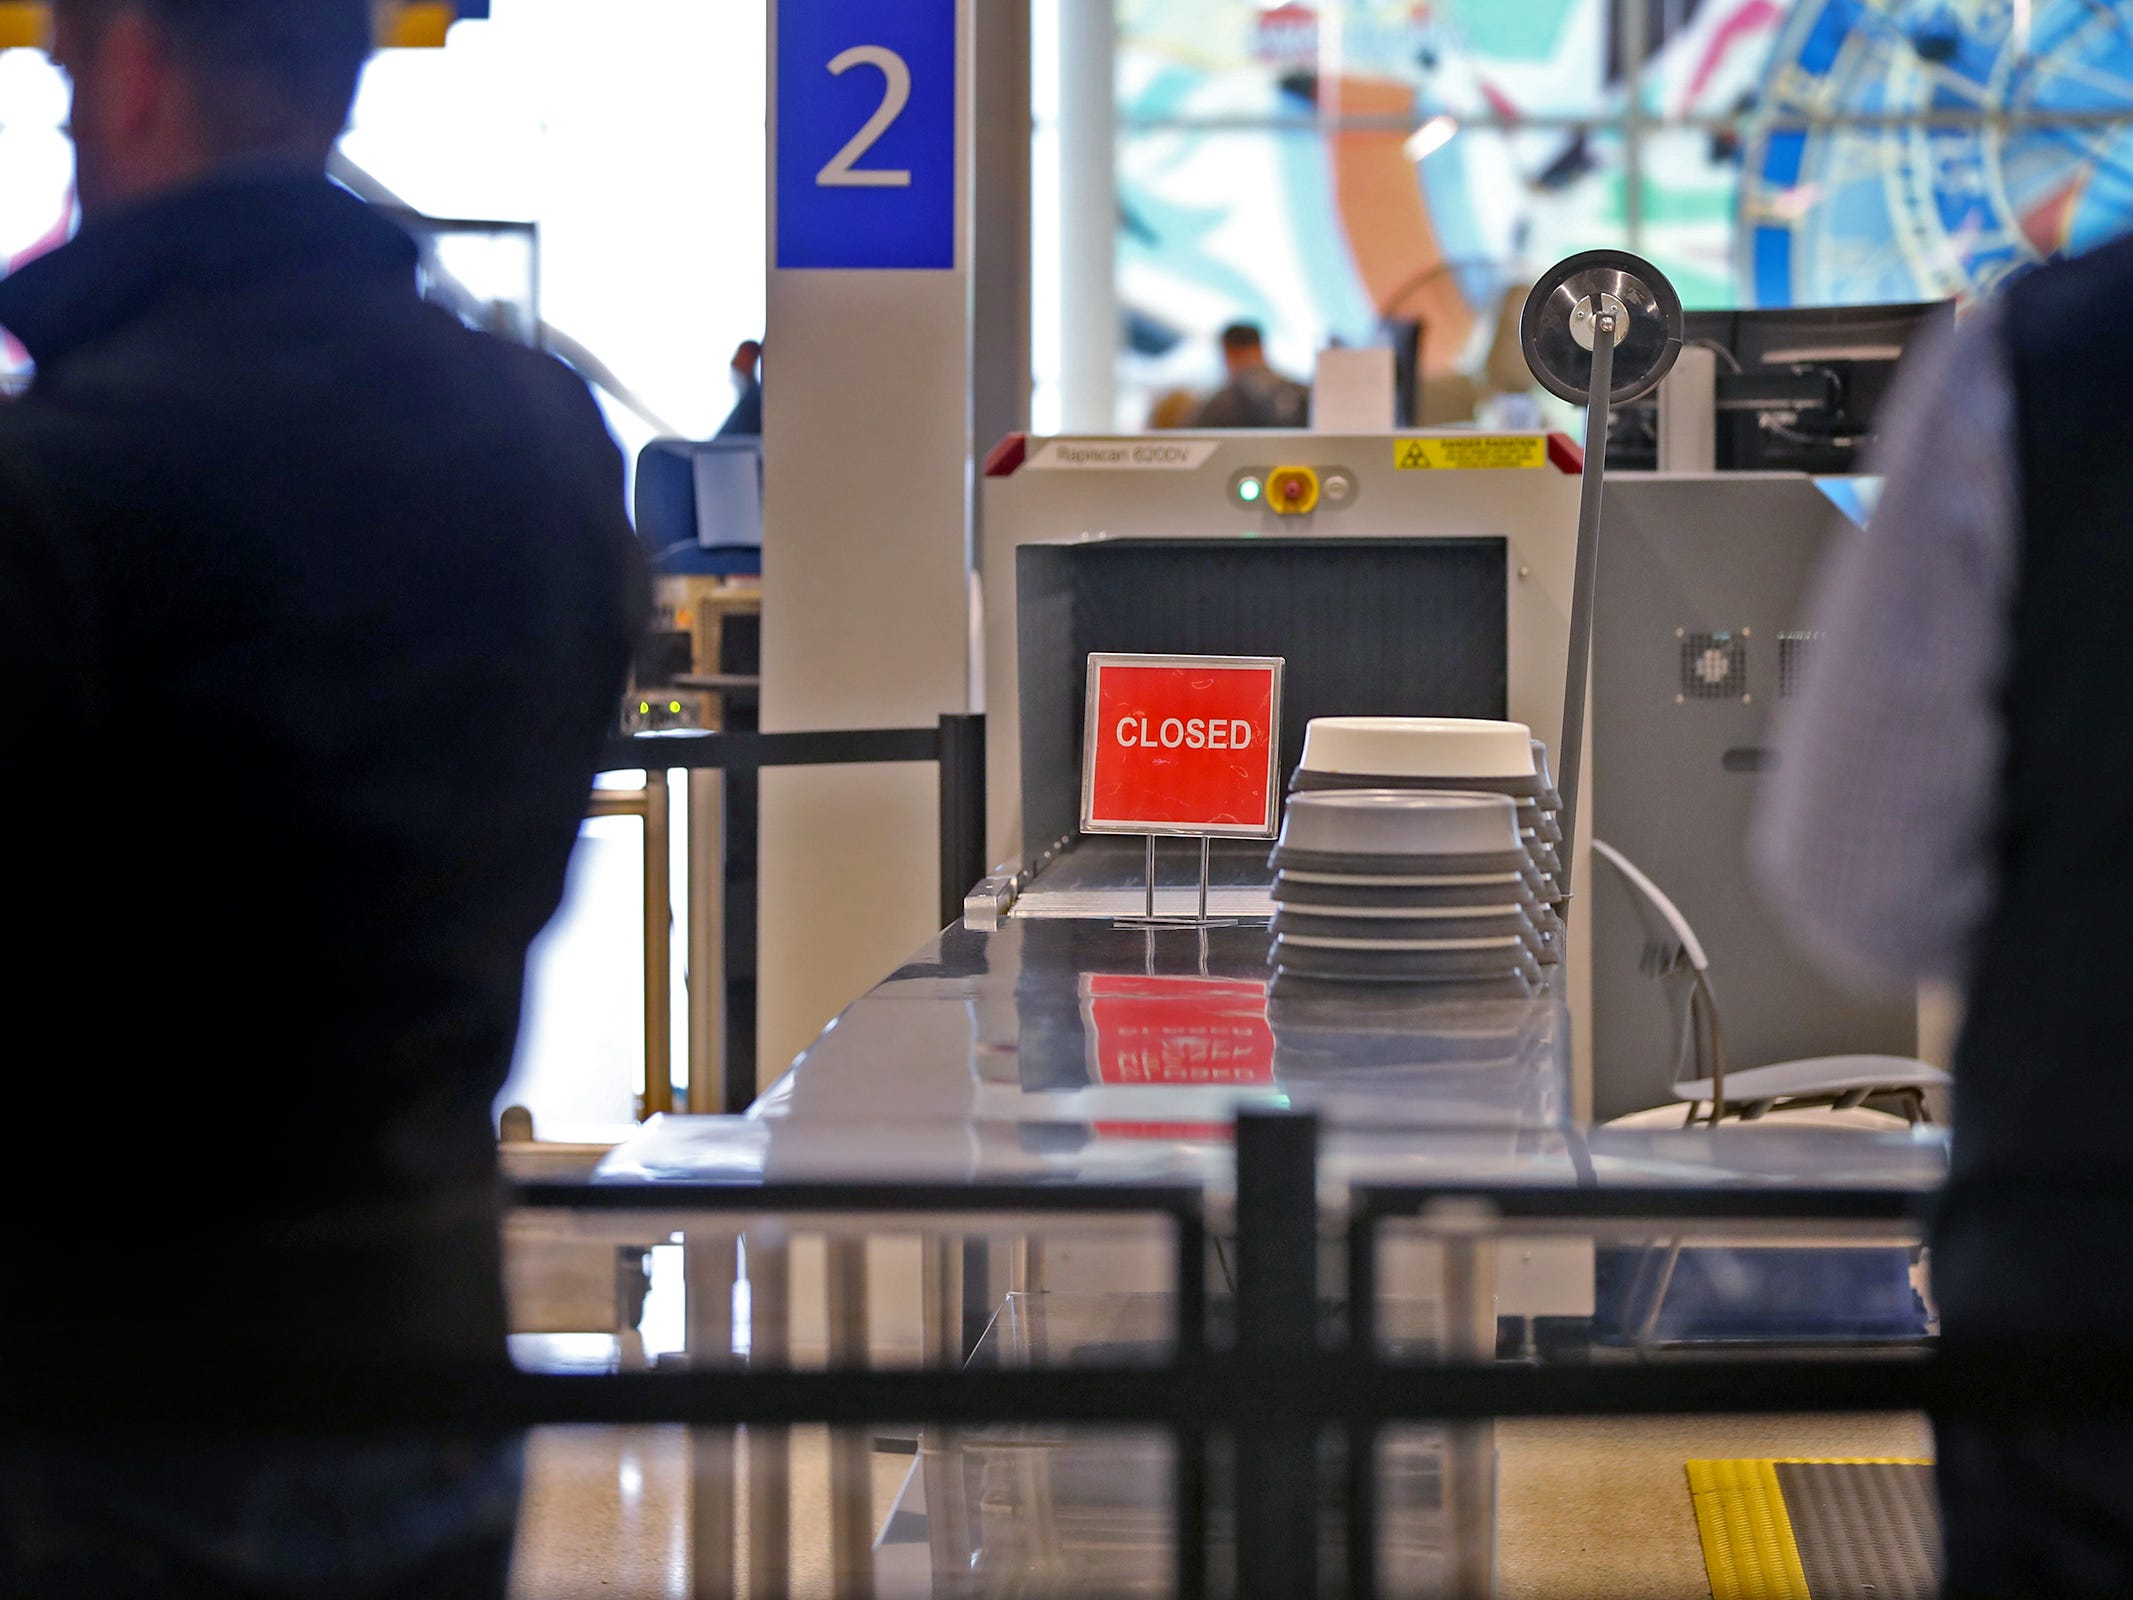 A closed line is seen at a security checkpoint at the Indianapolis International Airport, Tuesday, Jan. 15, 2019.